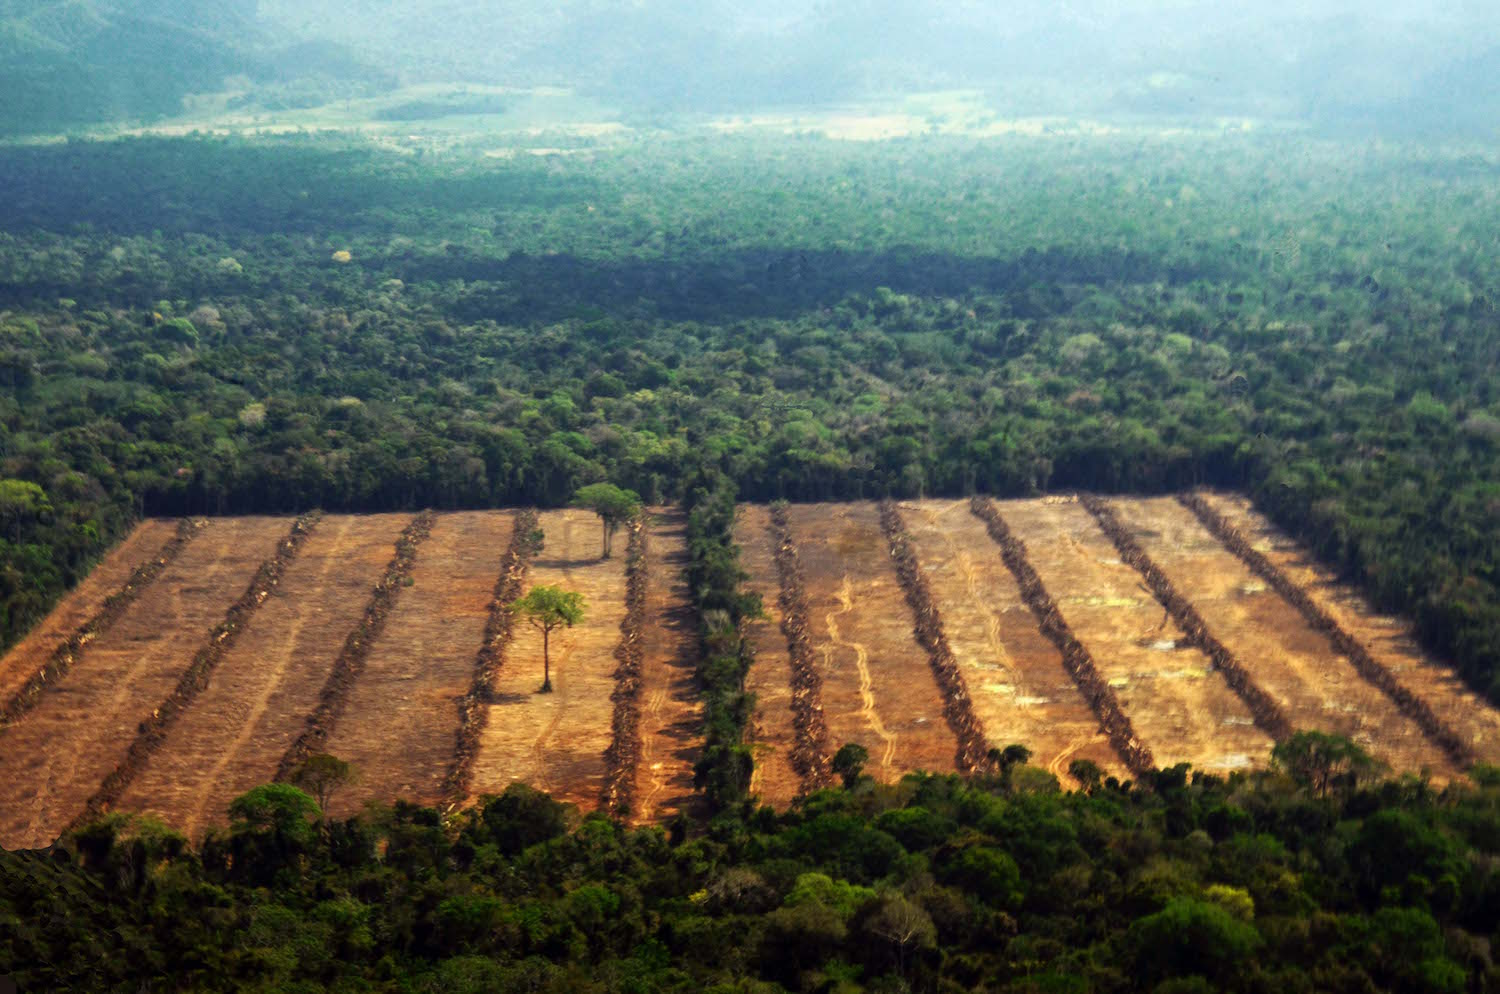 Deforestation around Ingenio San Buenaventura. Photo by Eduardo Franco Berton